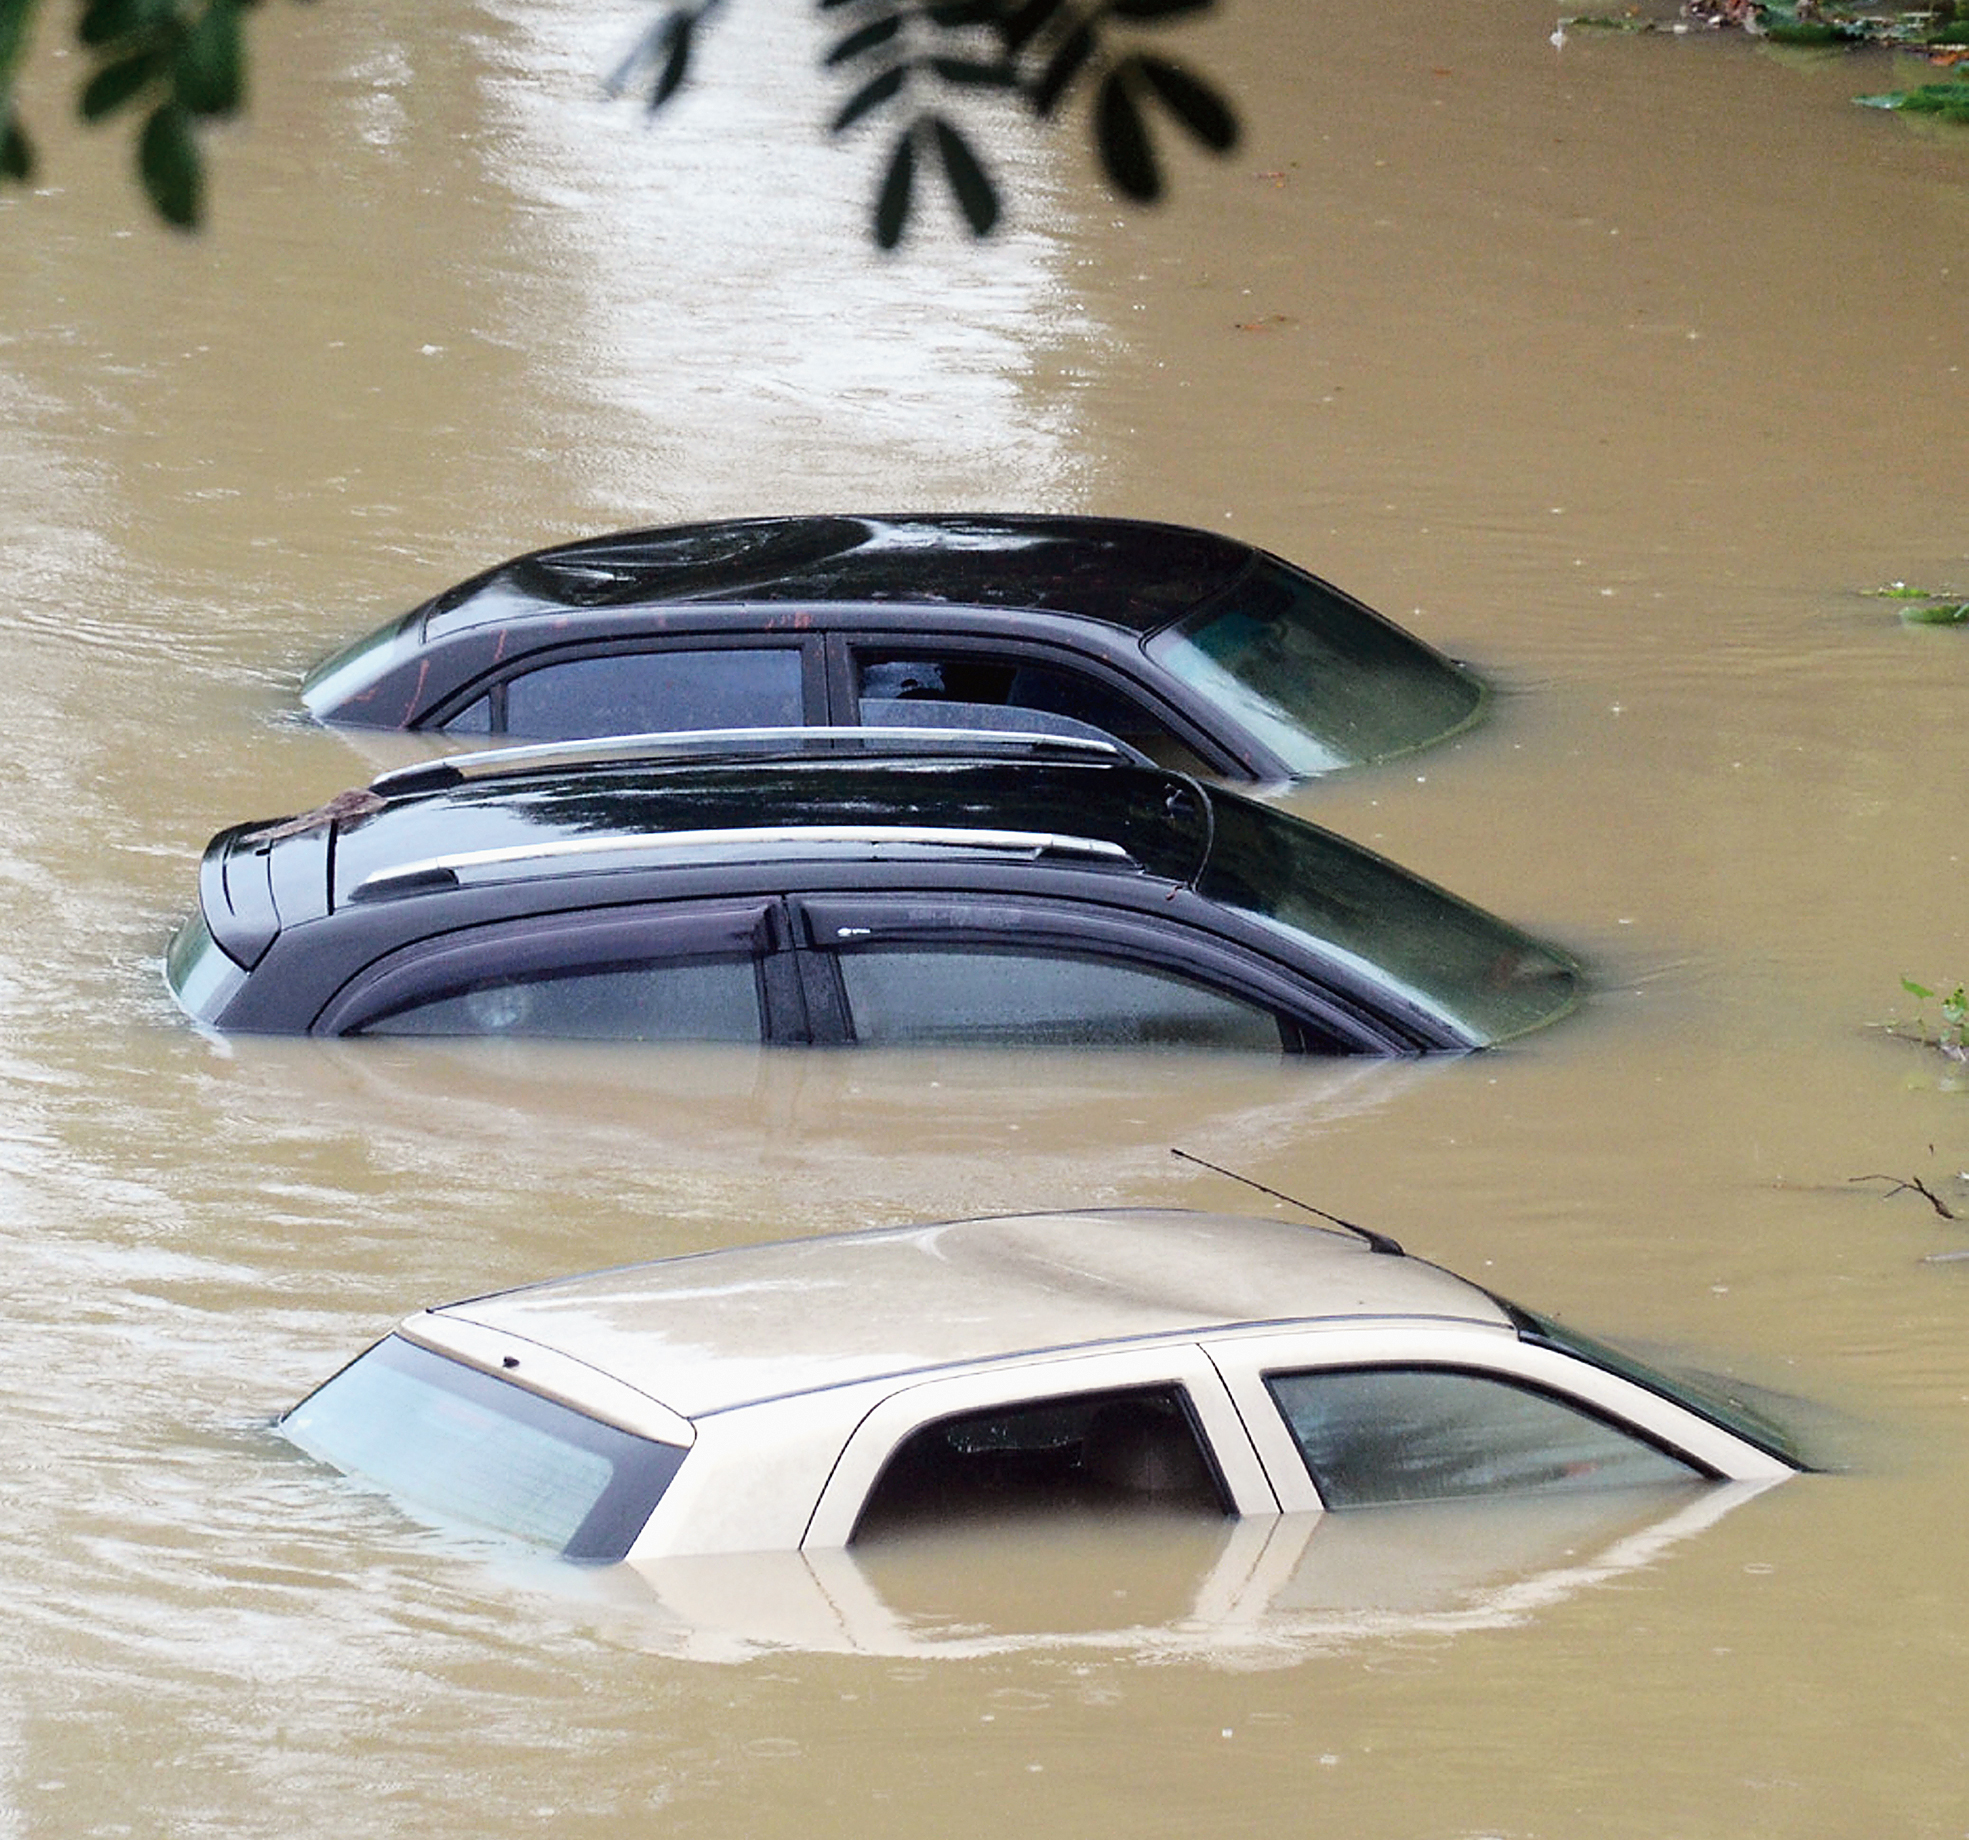 Cars submerged in floodwaters in Agartala on Sunday.